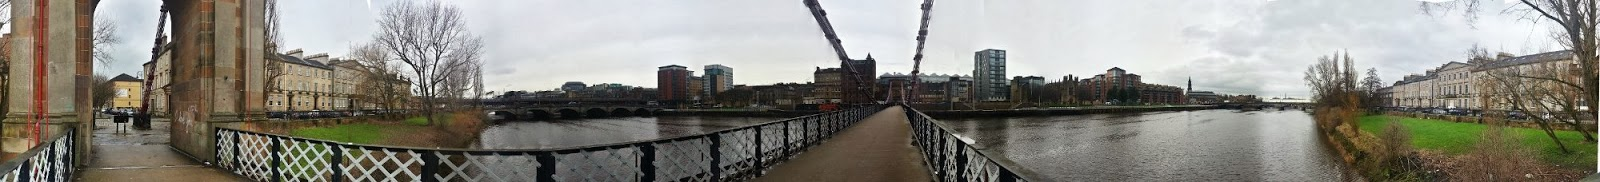 Clyde Street Suspension Bridge, Glasgow